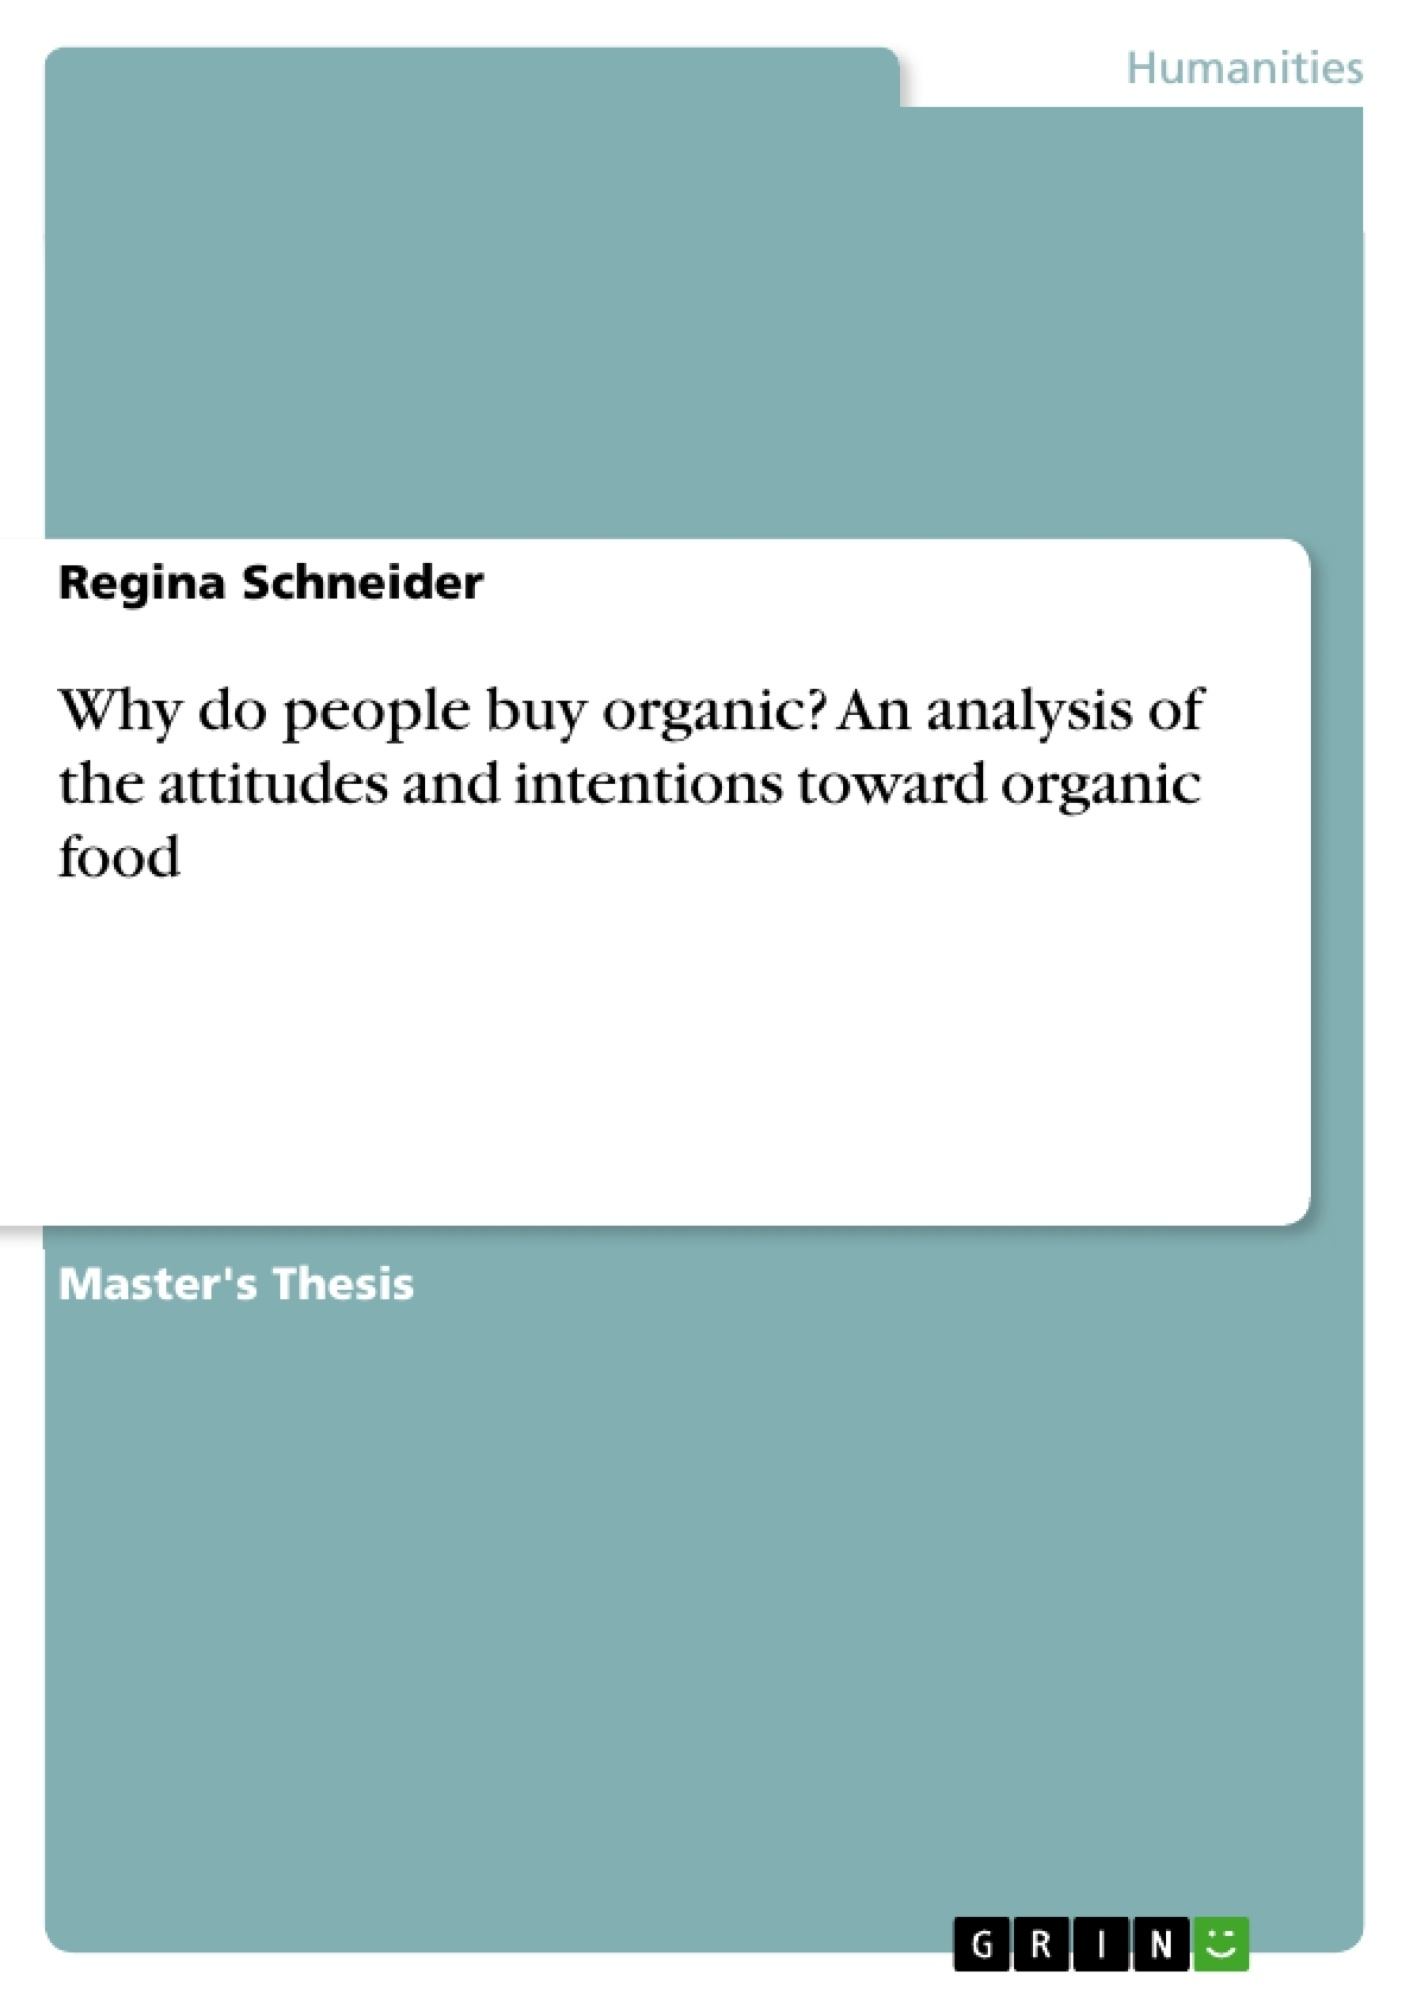 Title: Why do people buy organic? An analysis of the attitudes and intentions toward organic food